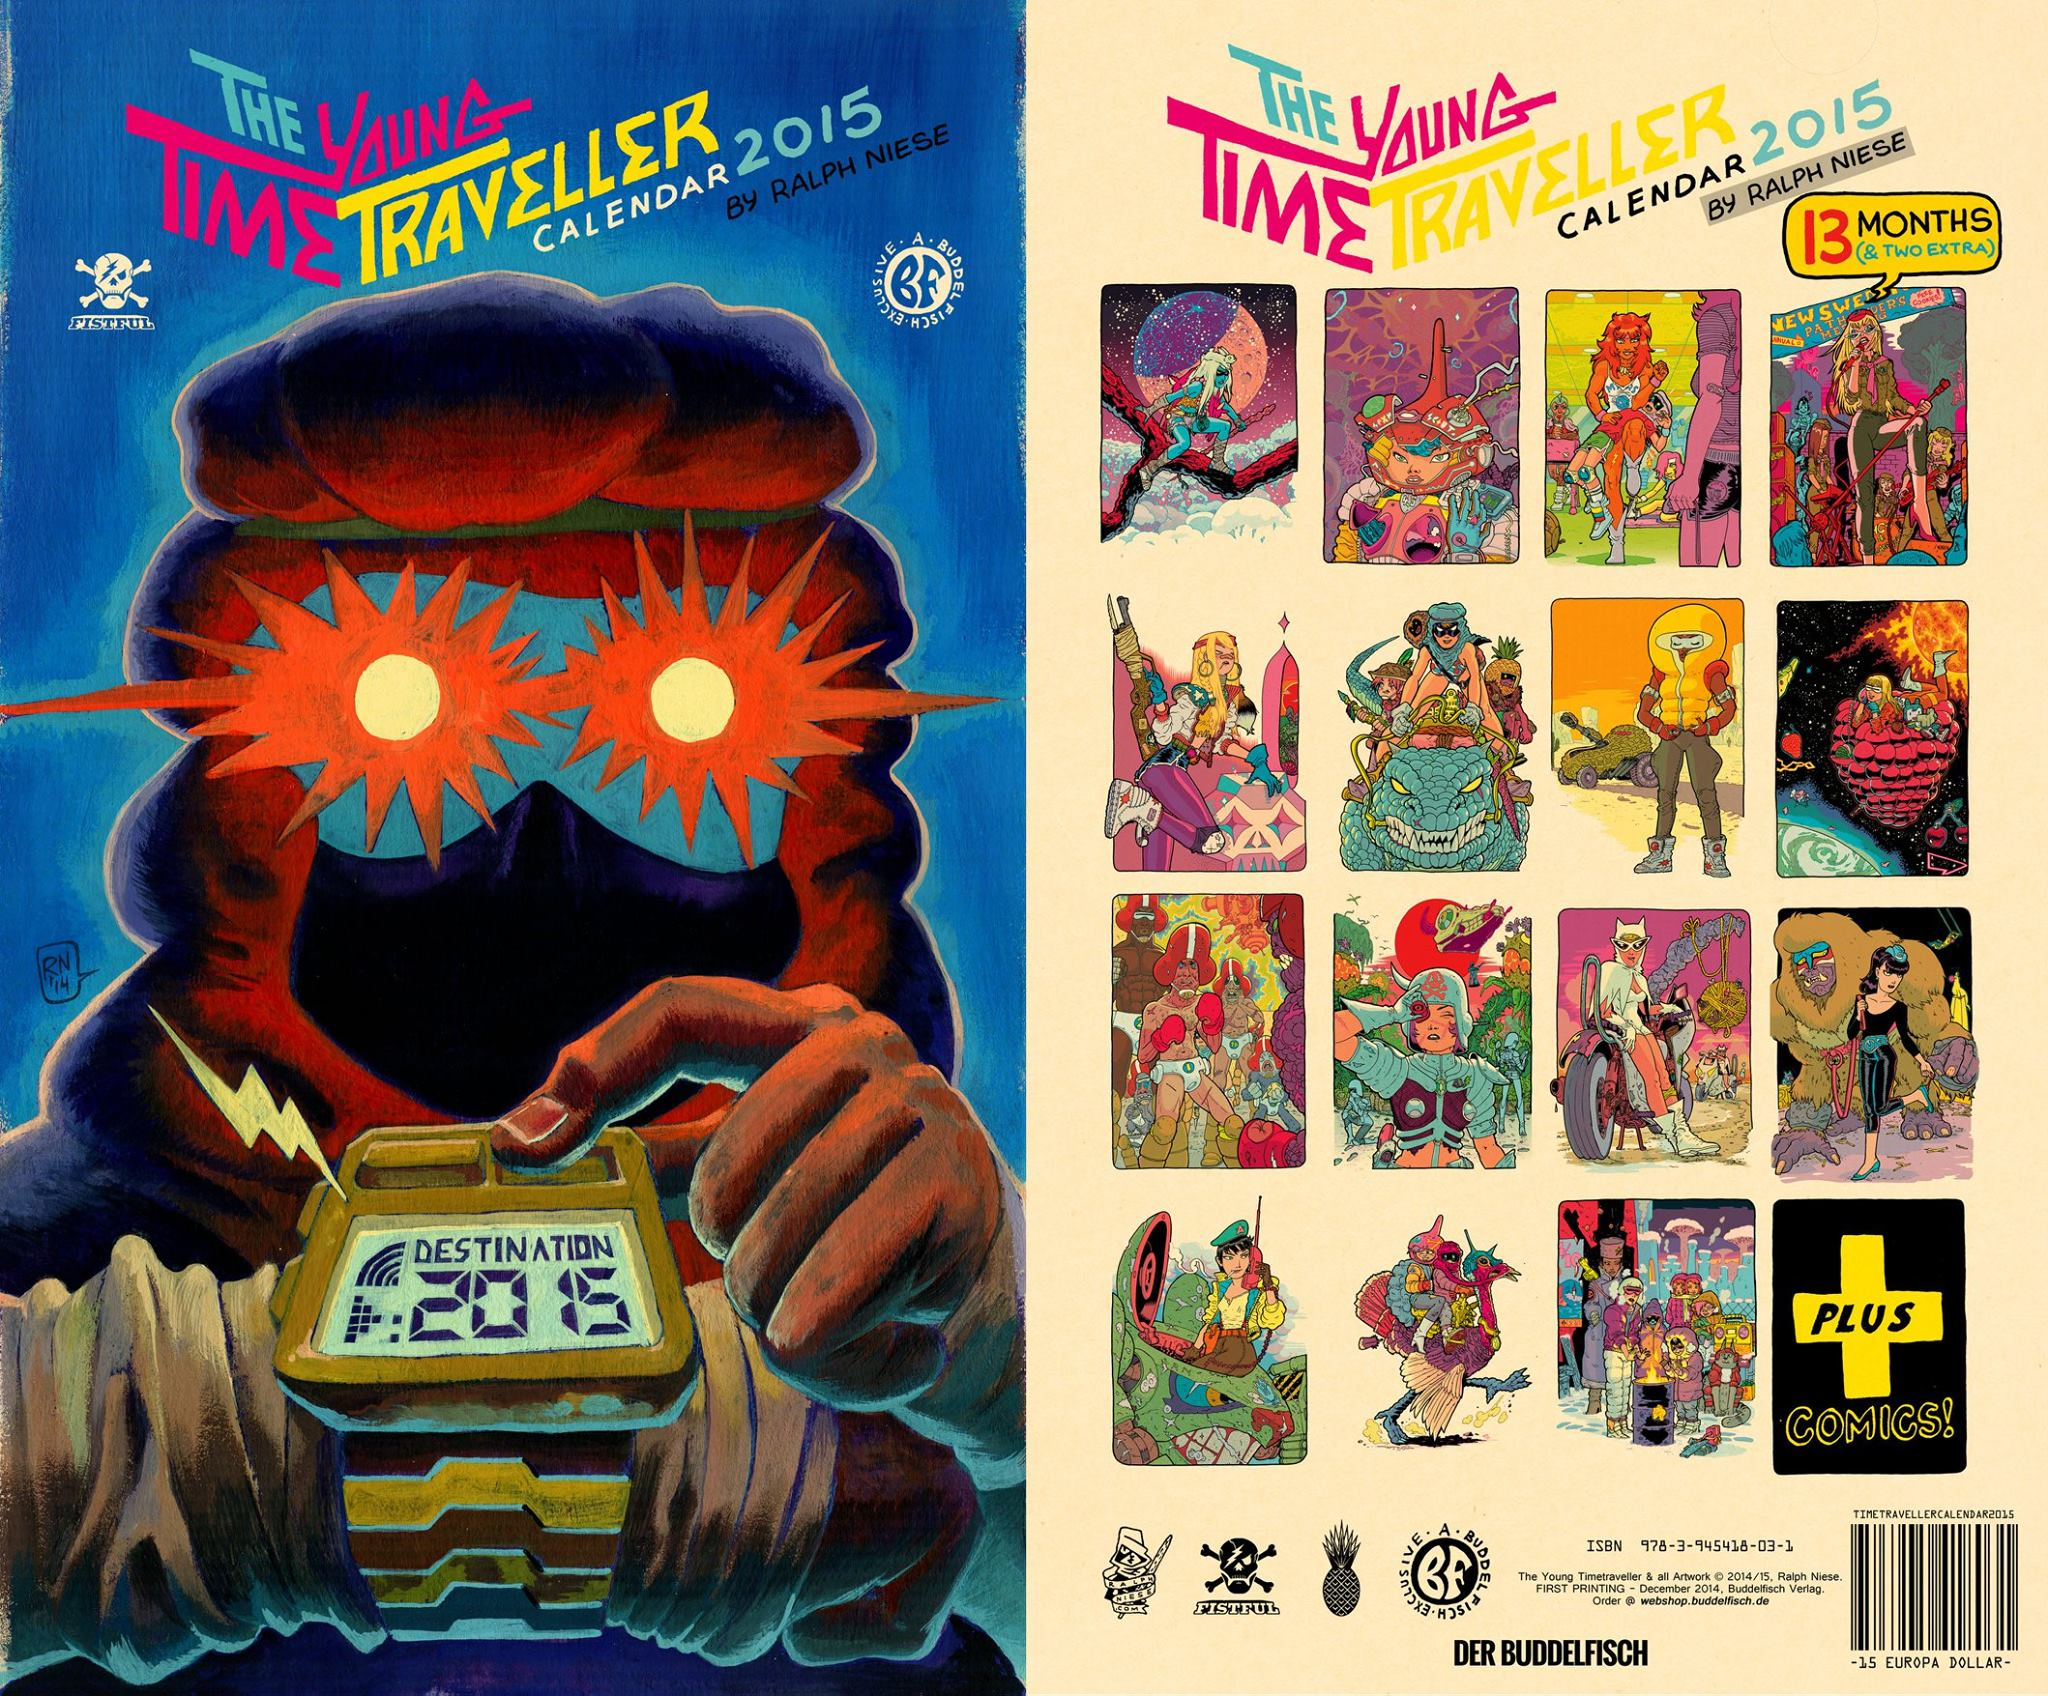 Heisse Ware im Webshop! THE YOUNG TIME TRAVELLER Kalender und FIESER SPLATTER #1